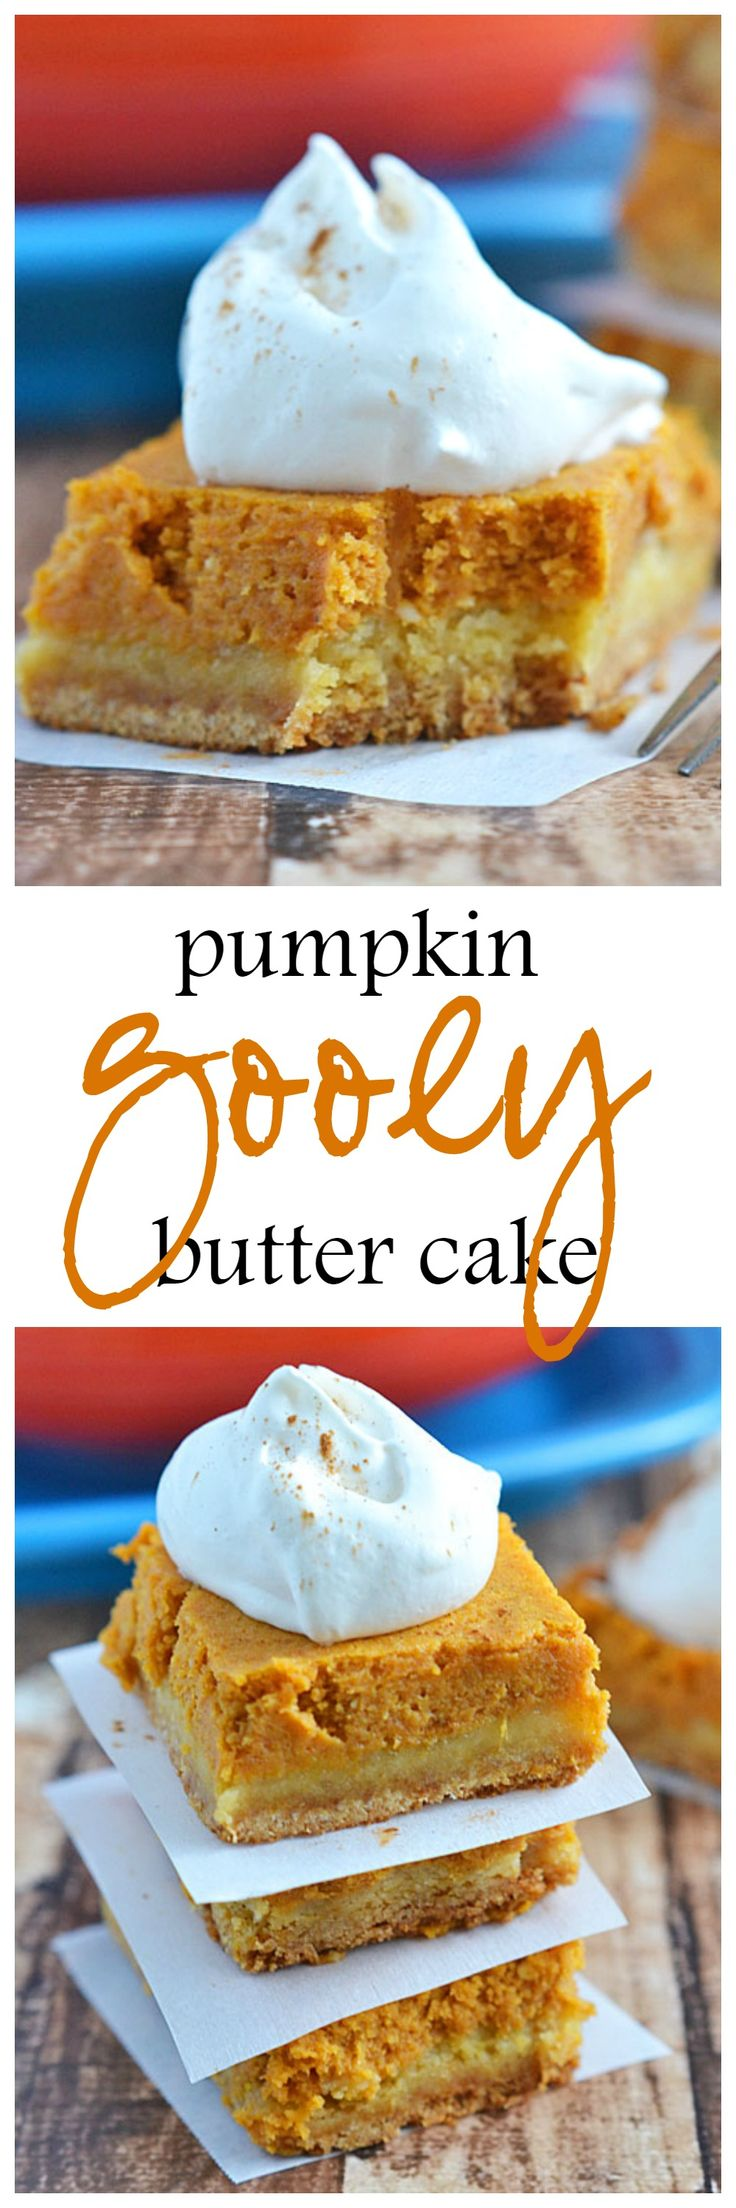 Surprisingly easy to make and truly delicious, this Pumpkin Gooey Butter Cake is the ultimate in fall dessert decadence! Believe me, you'll want this cake on your holiday table! | Kitchen Meets Girl